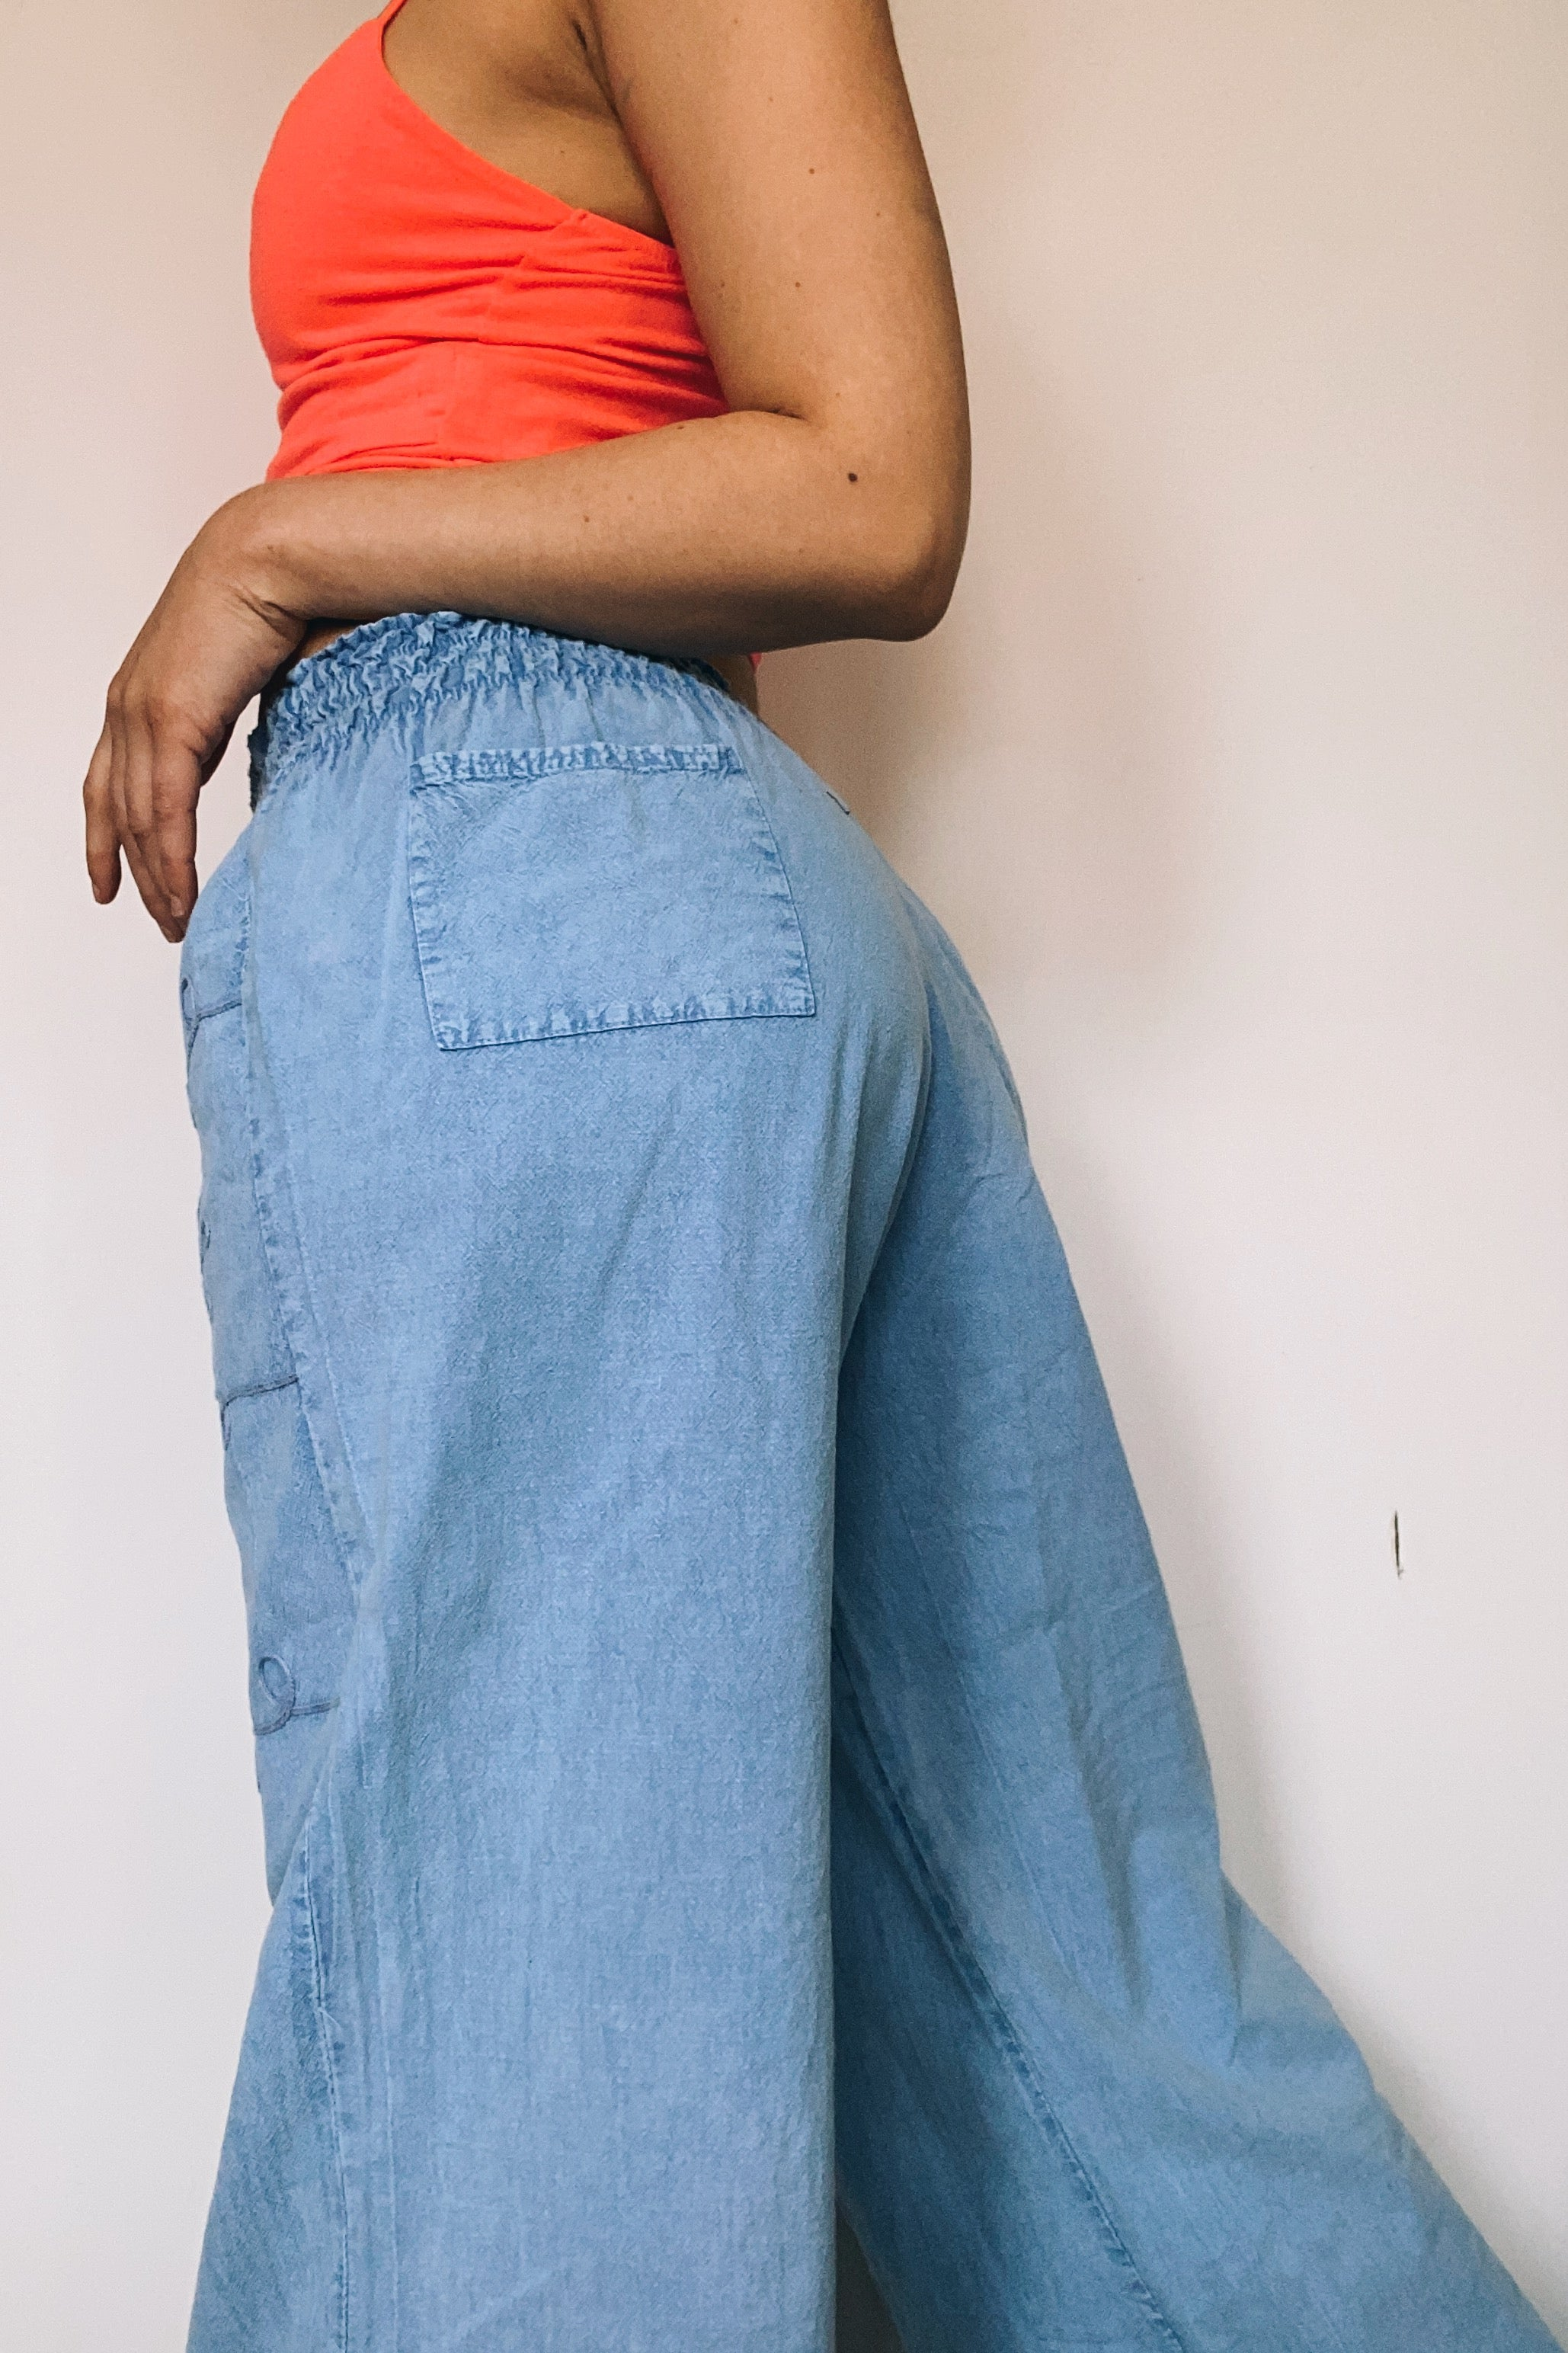 DENIM GODDESS BLOOMERS - Mukta Being